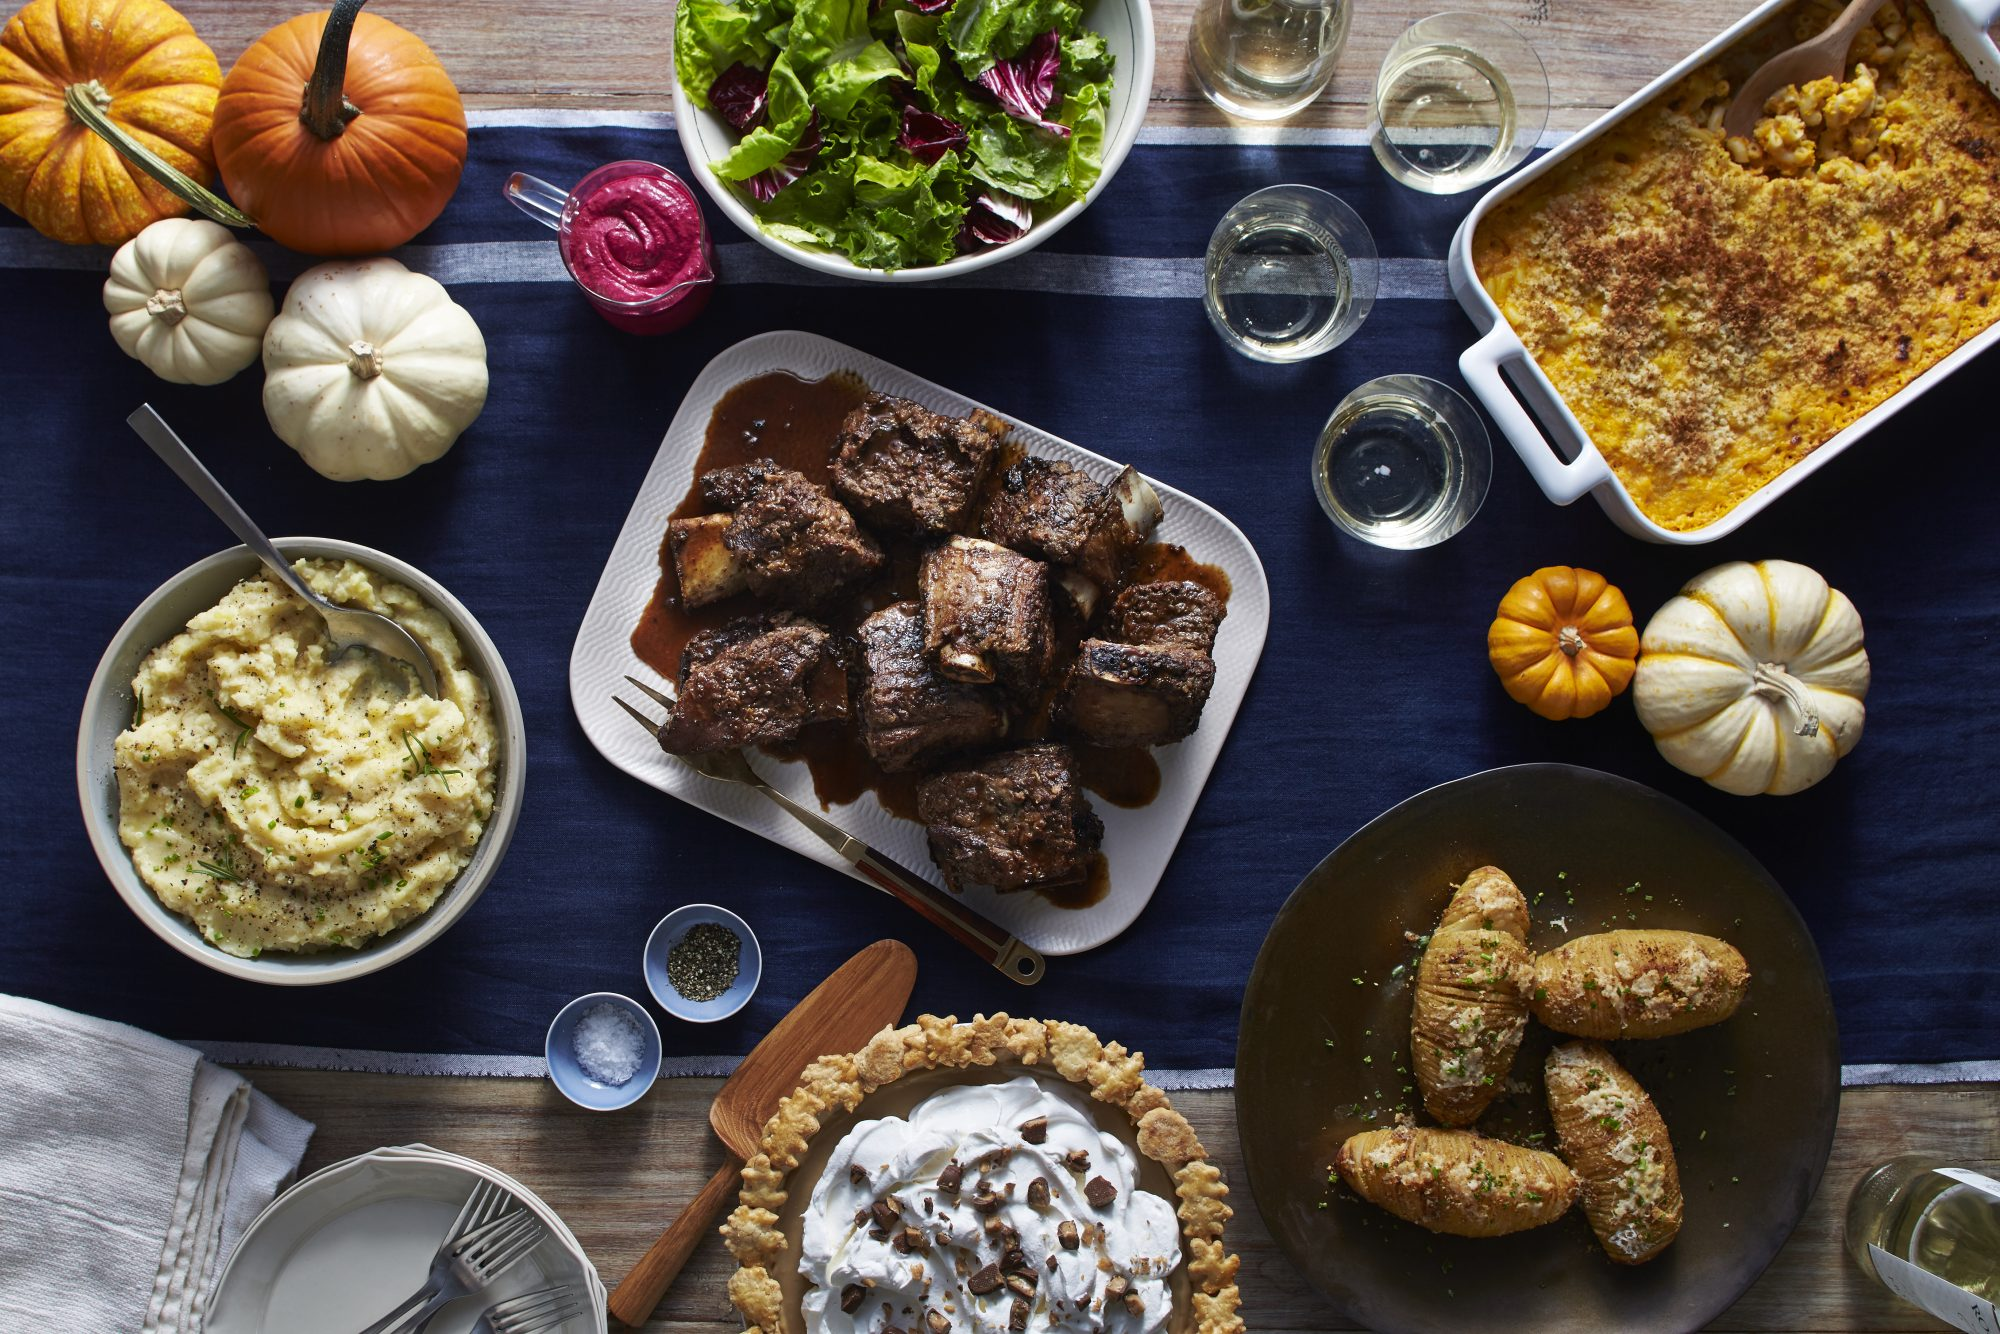 mr-friendsgiving-table-image